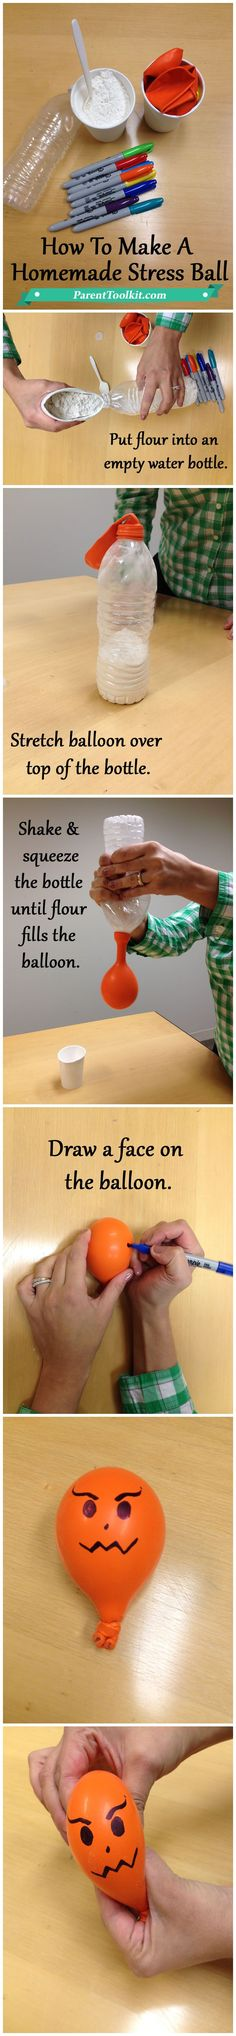 Help your child manage their stress by making homemade stress balls. #Stress